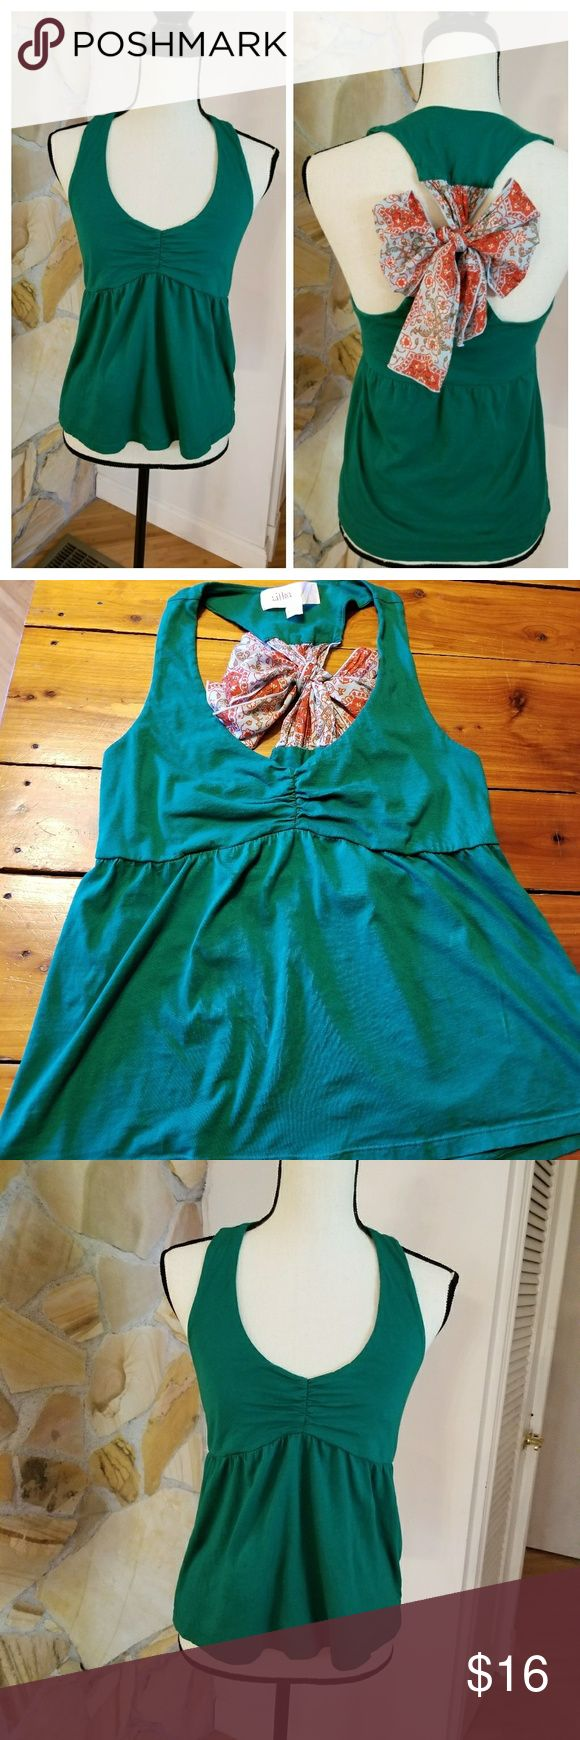 "Lilka bow back tank Green racer back with floral ribbon to style and adjust your own bow.  100% cotton. •Armpit to Armpit:  16"" •Length:  23"" Anthropologie Tops Tank Tops"